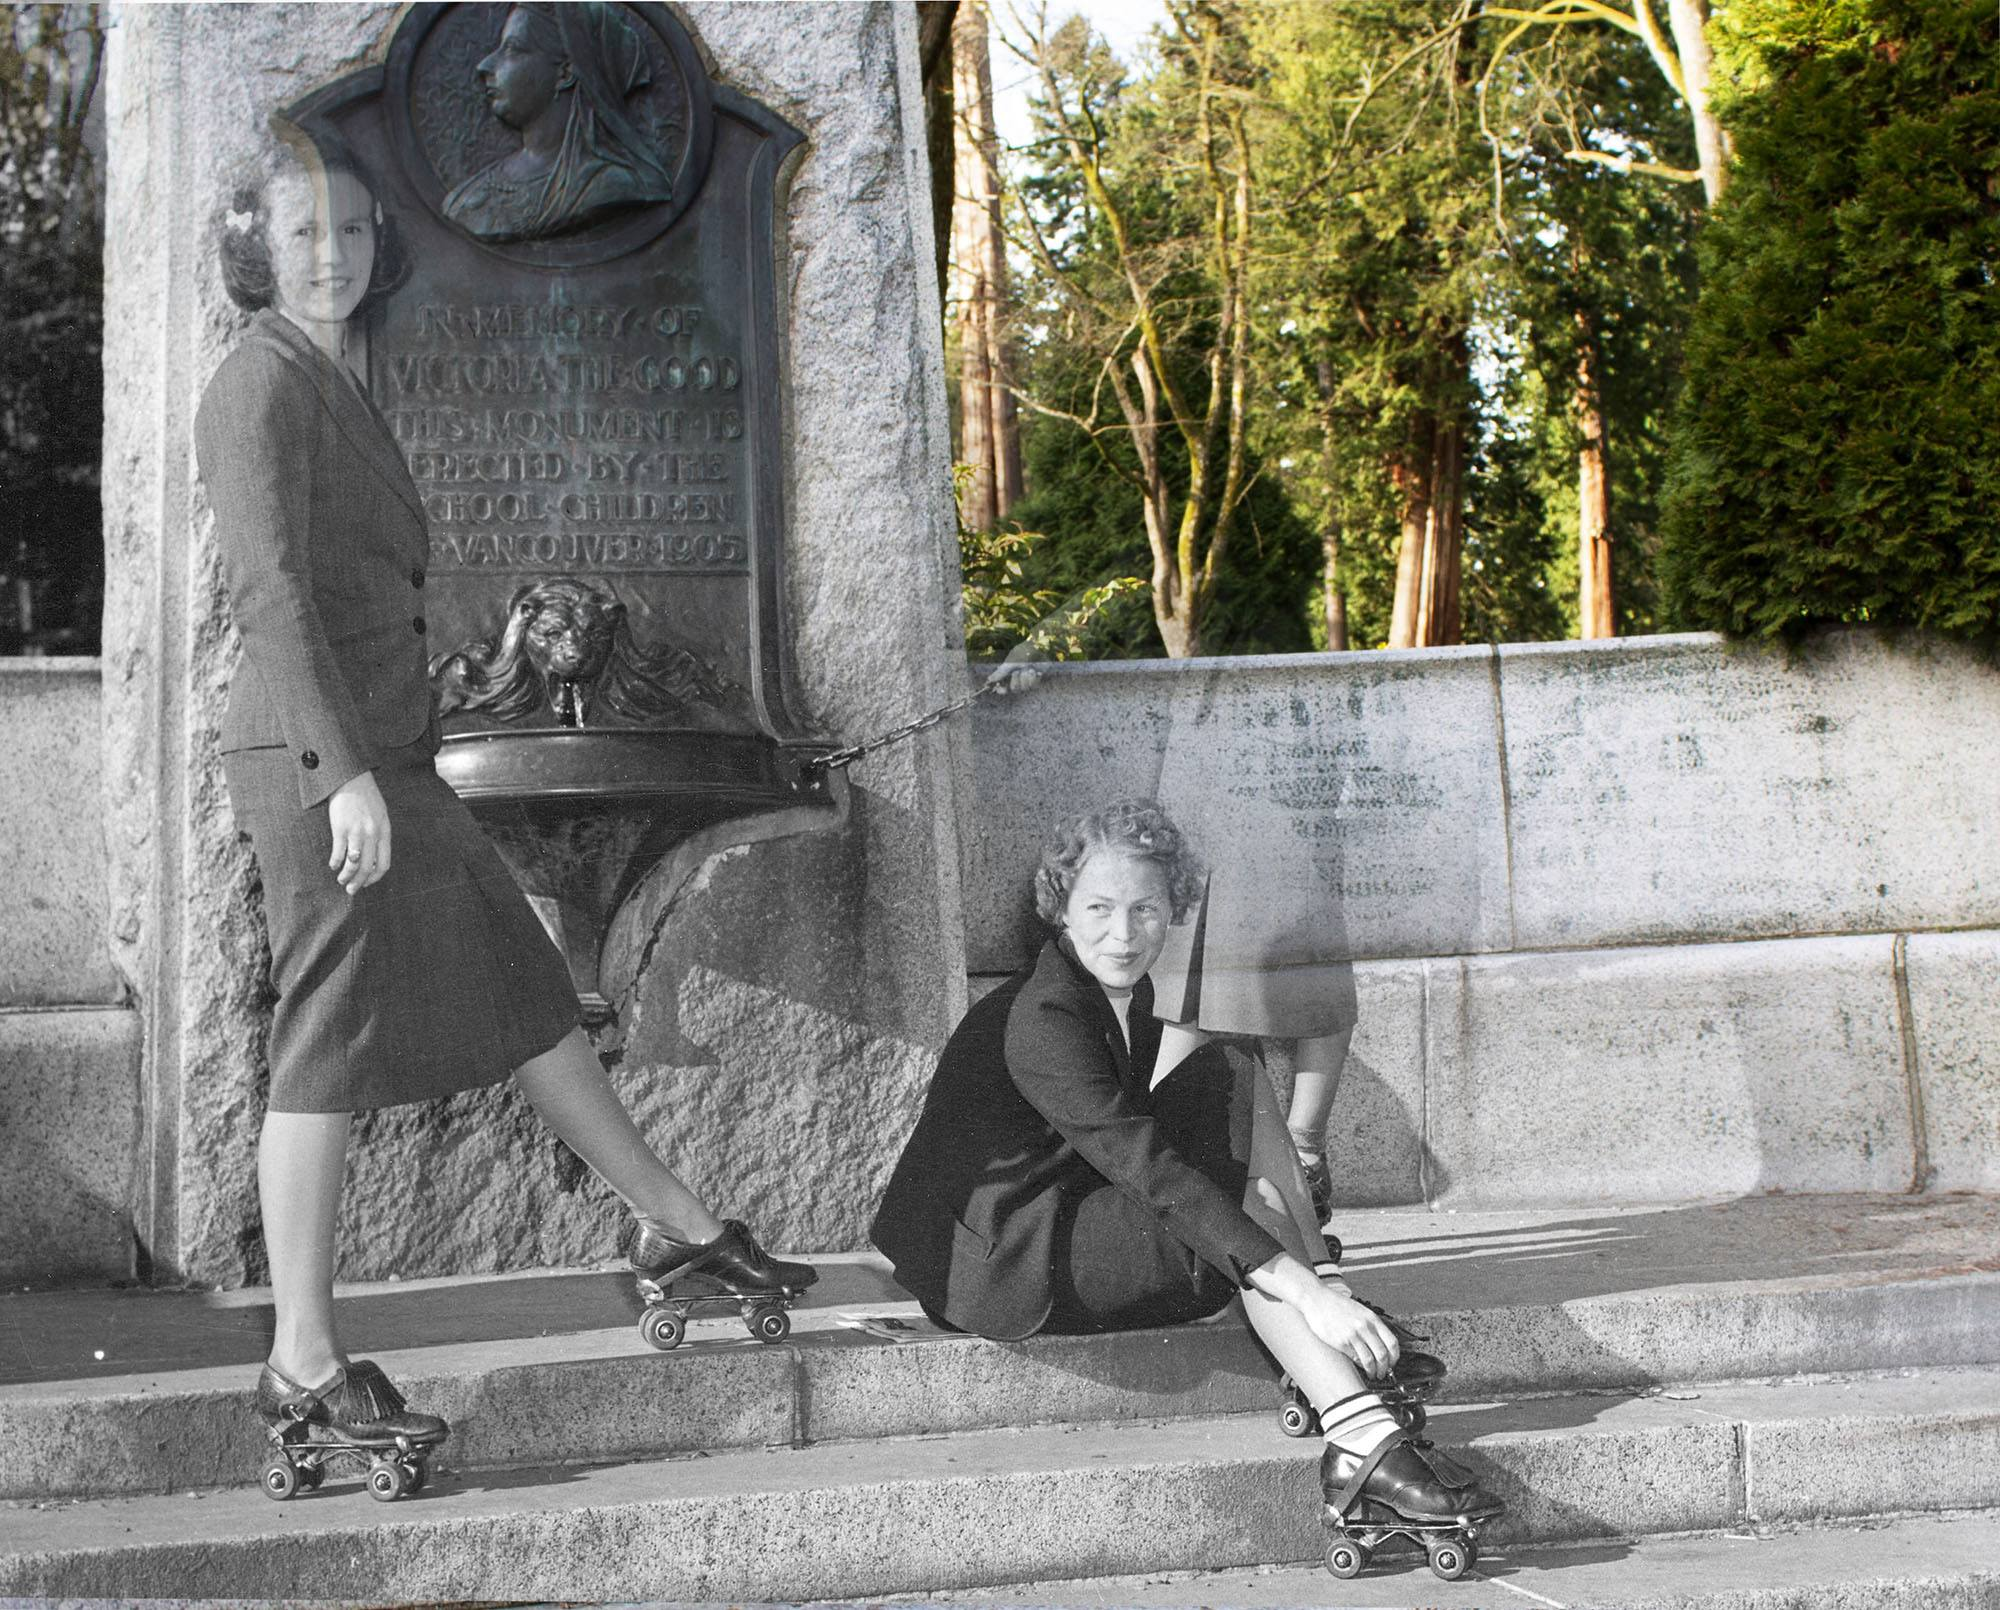 Three smiling girls take a break from roller skating at the Queen Victoria Memorial Fountain in 1940 (Vancouver Archives/On This Spot)